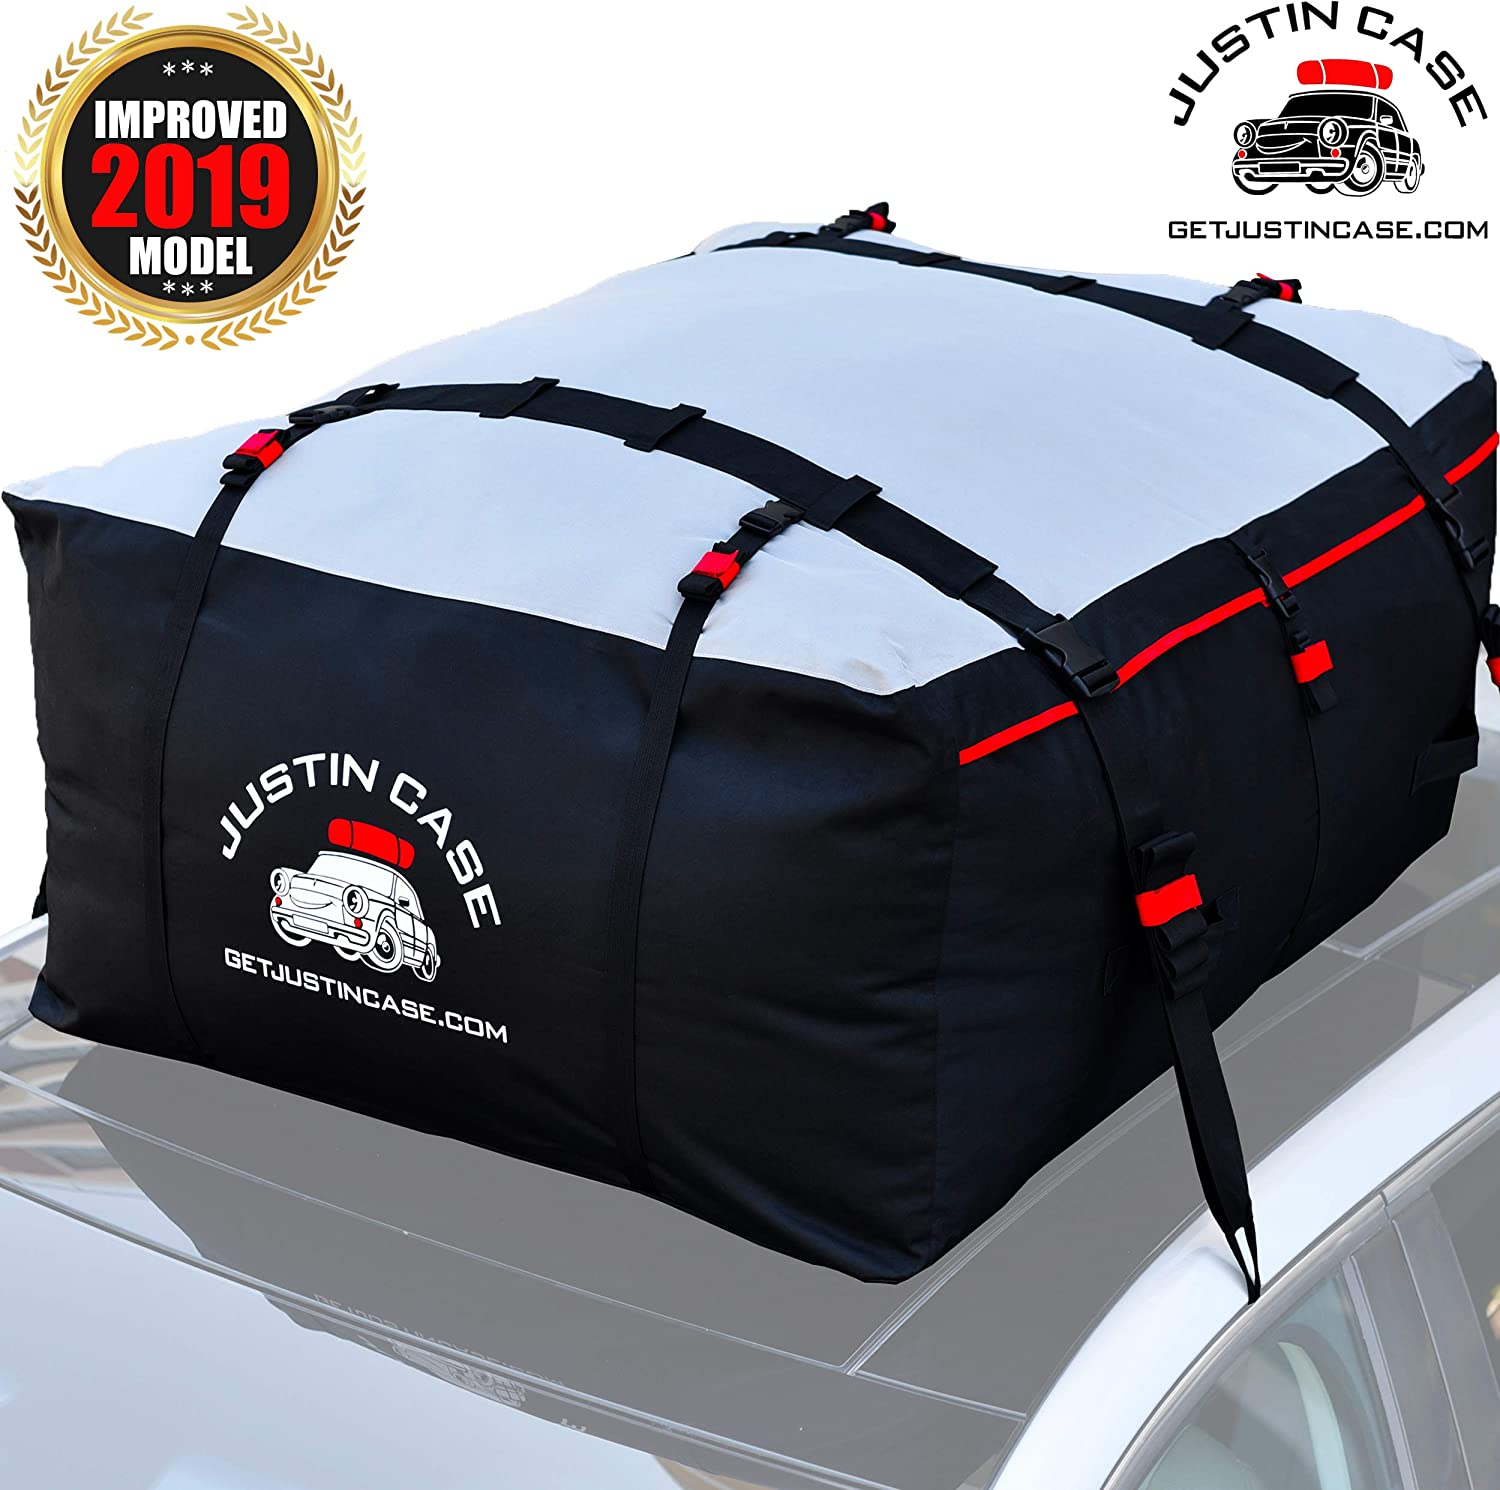 15 CFT expands to 19 CFT JUSTINCASE Rooftop Cargo Carrier Bag Straps /& Hooks Included Works Without Luggage Rack or Side Rails Roof Bag Waterproof Car Top Carrier for Extra Car Roof Storage